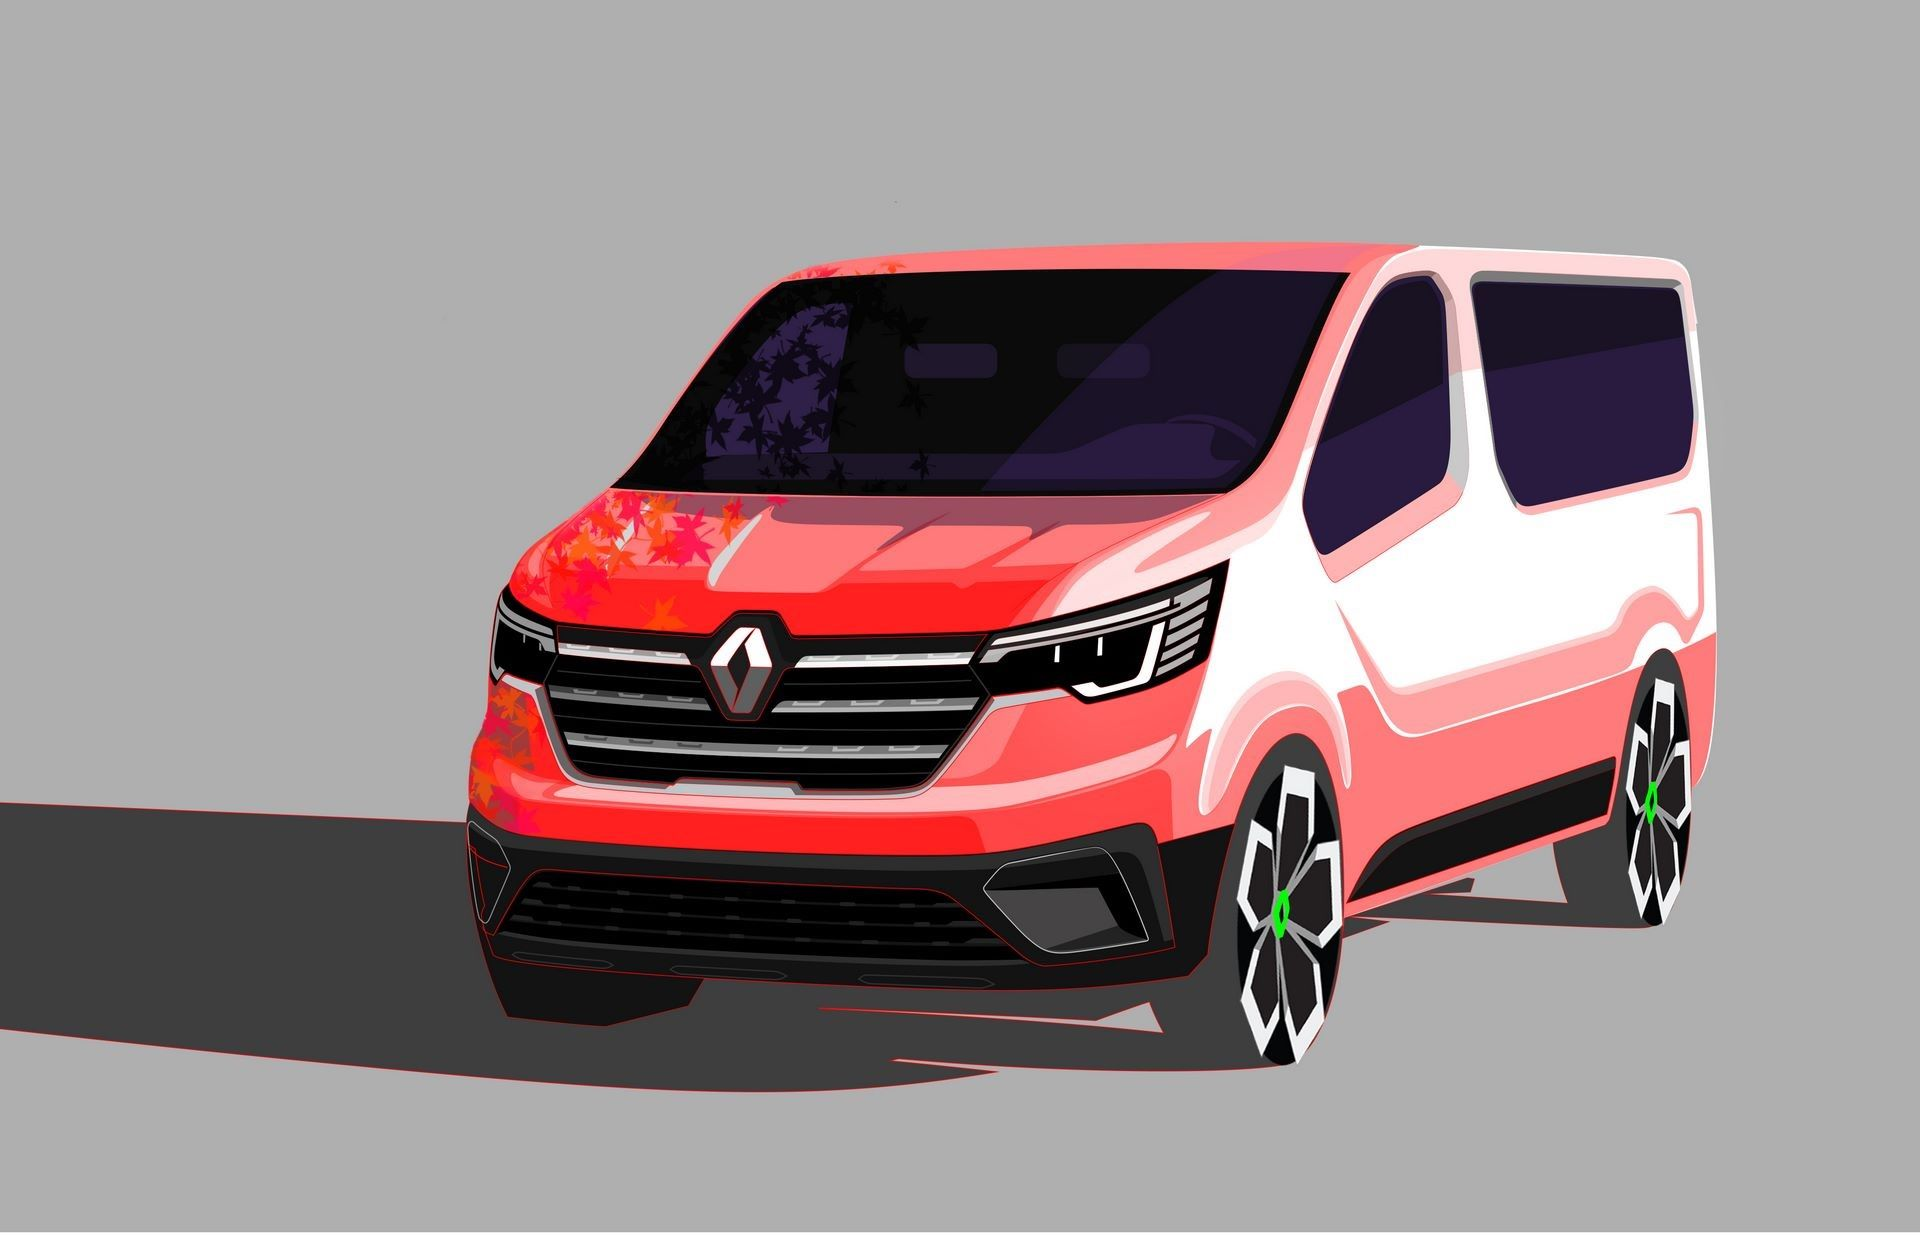 9-2020-DESIGN-CREATION-OF-NEW-RENAULT-TRAFIC